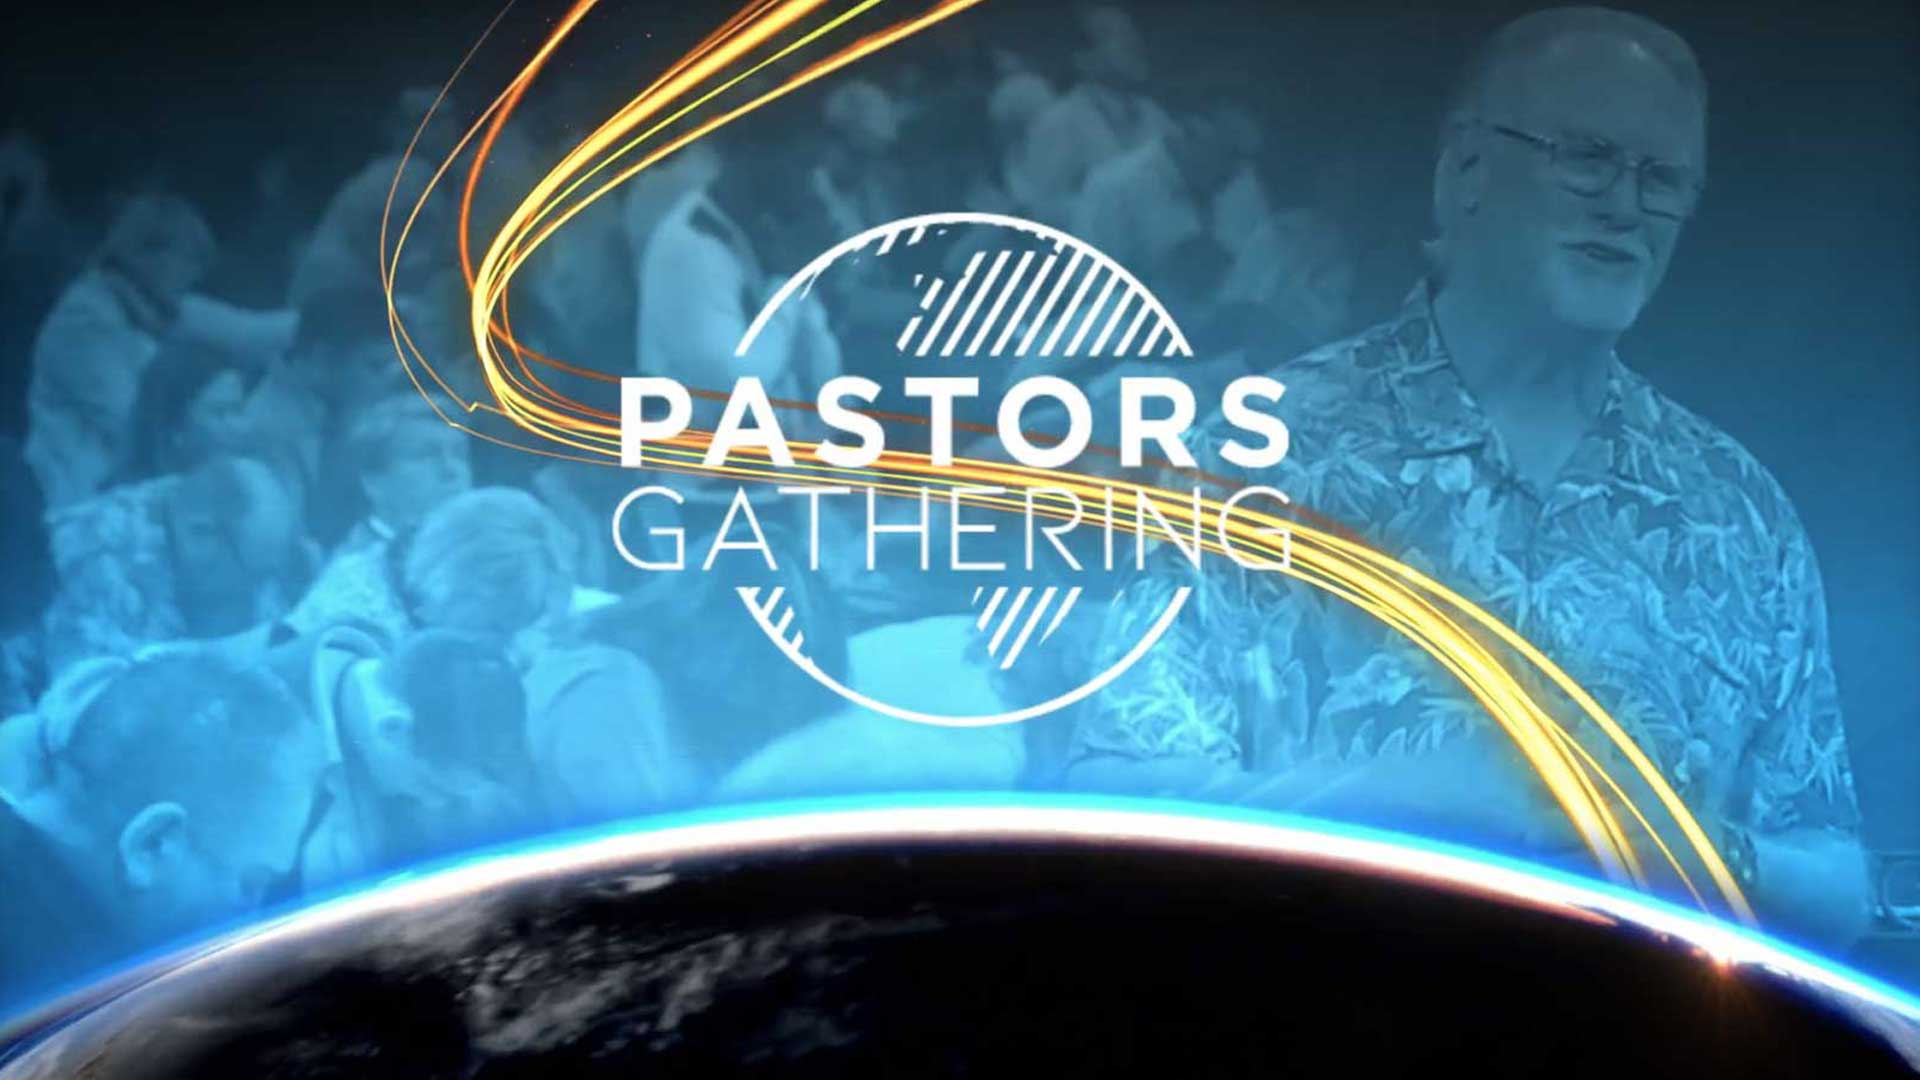 The Pastors Gathering